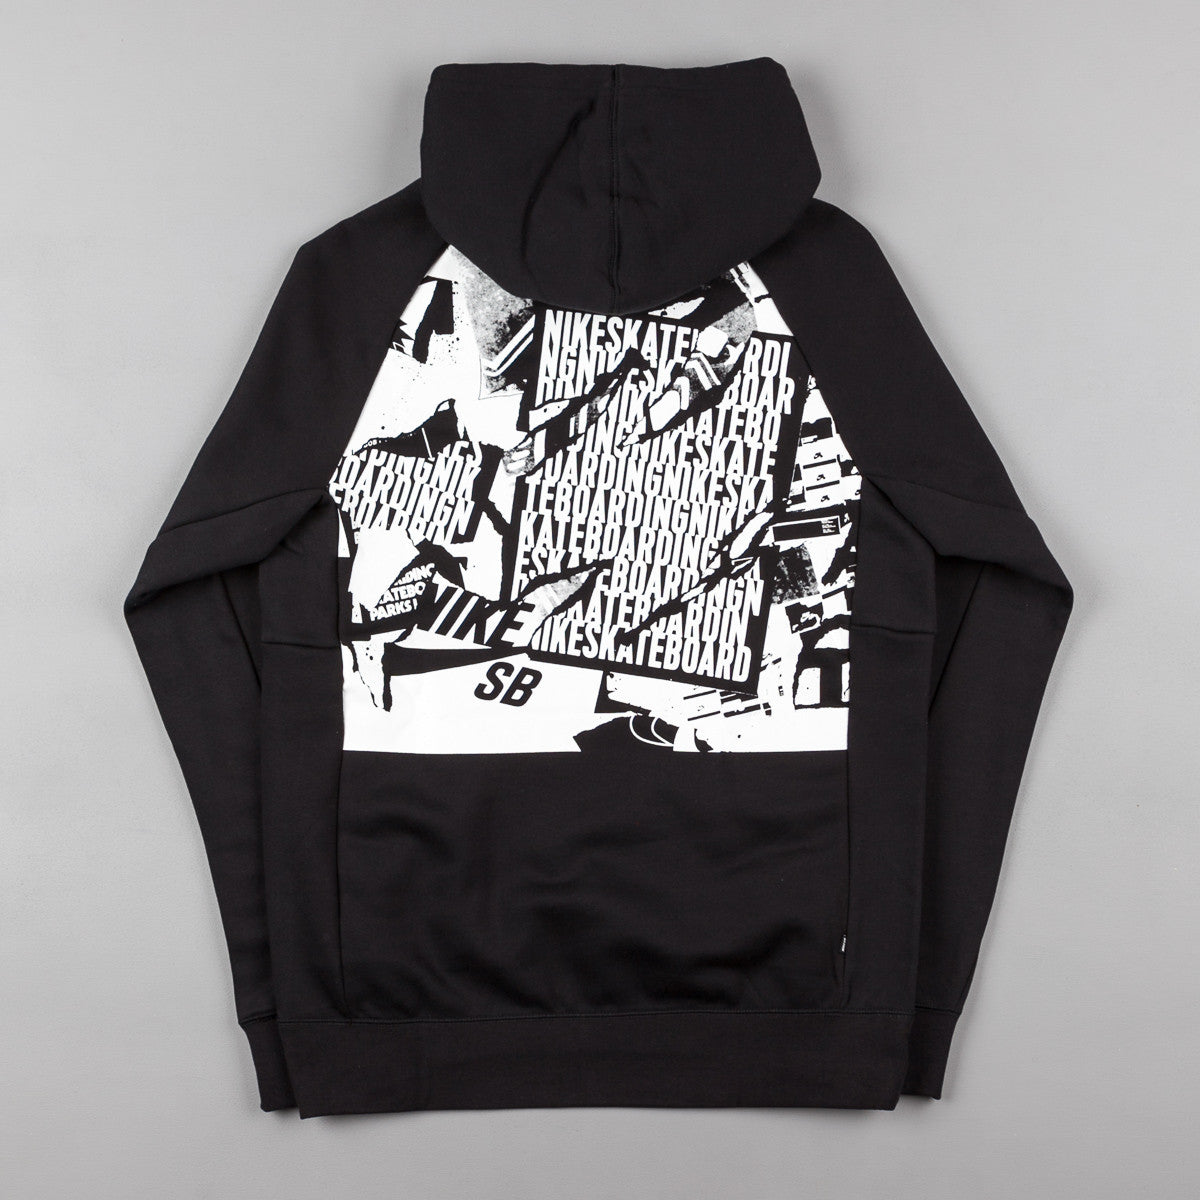 Nike SB Icon Ripped Pullover Hooded Sweatshirt - Black / White